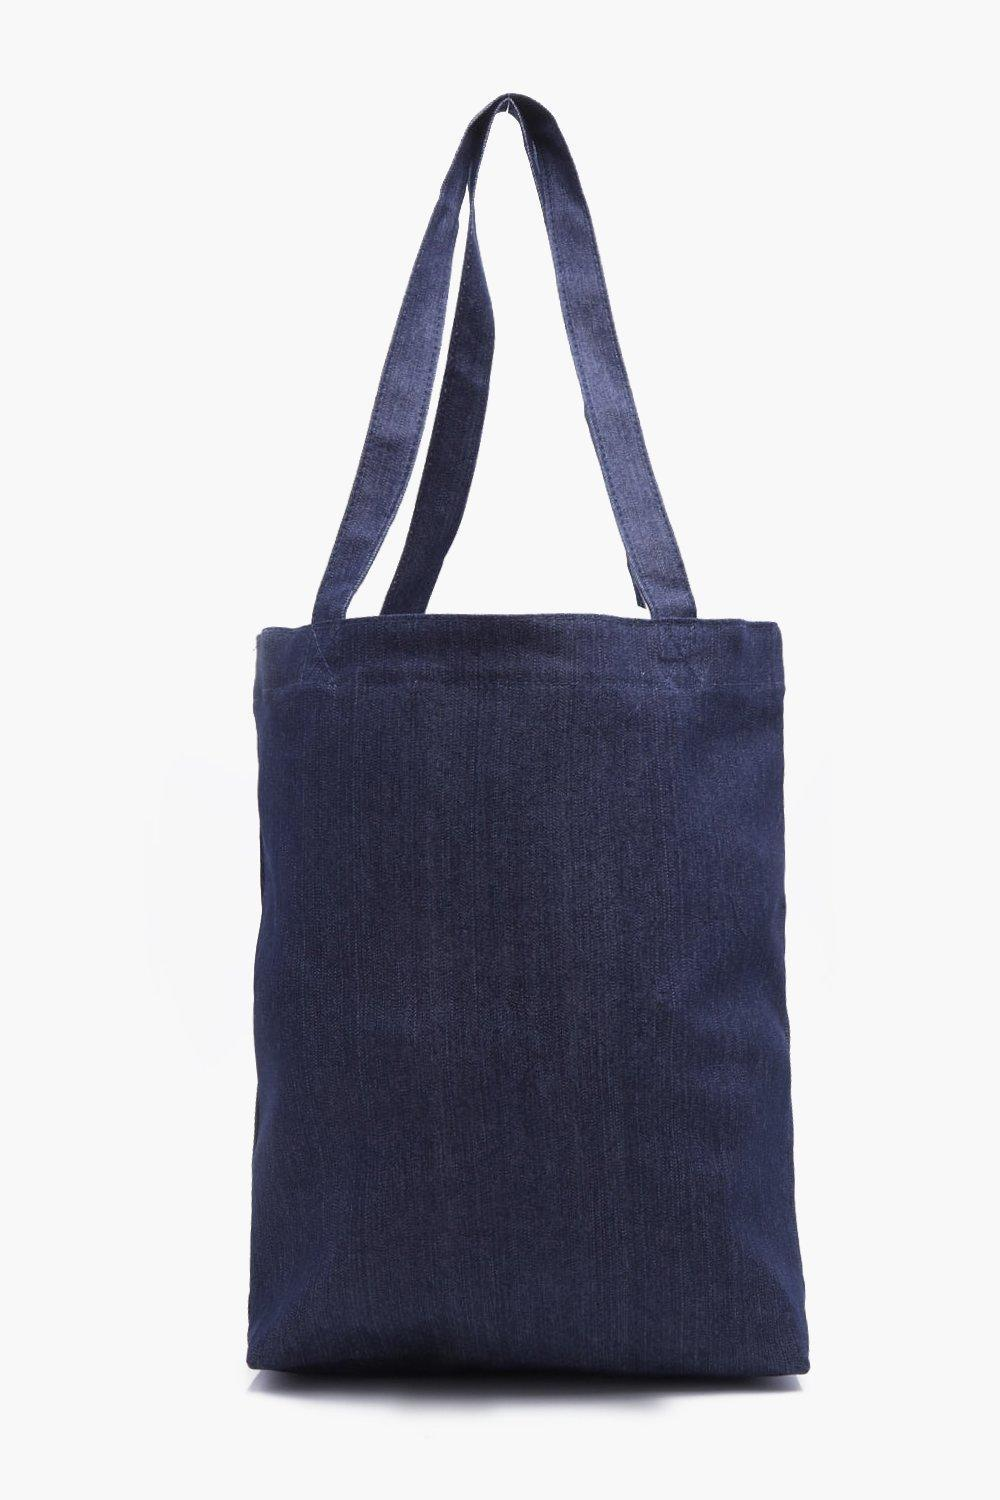 Boohoo Man Embroidered Denim Tote Bag in Navy (Blue) for Men